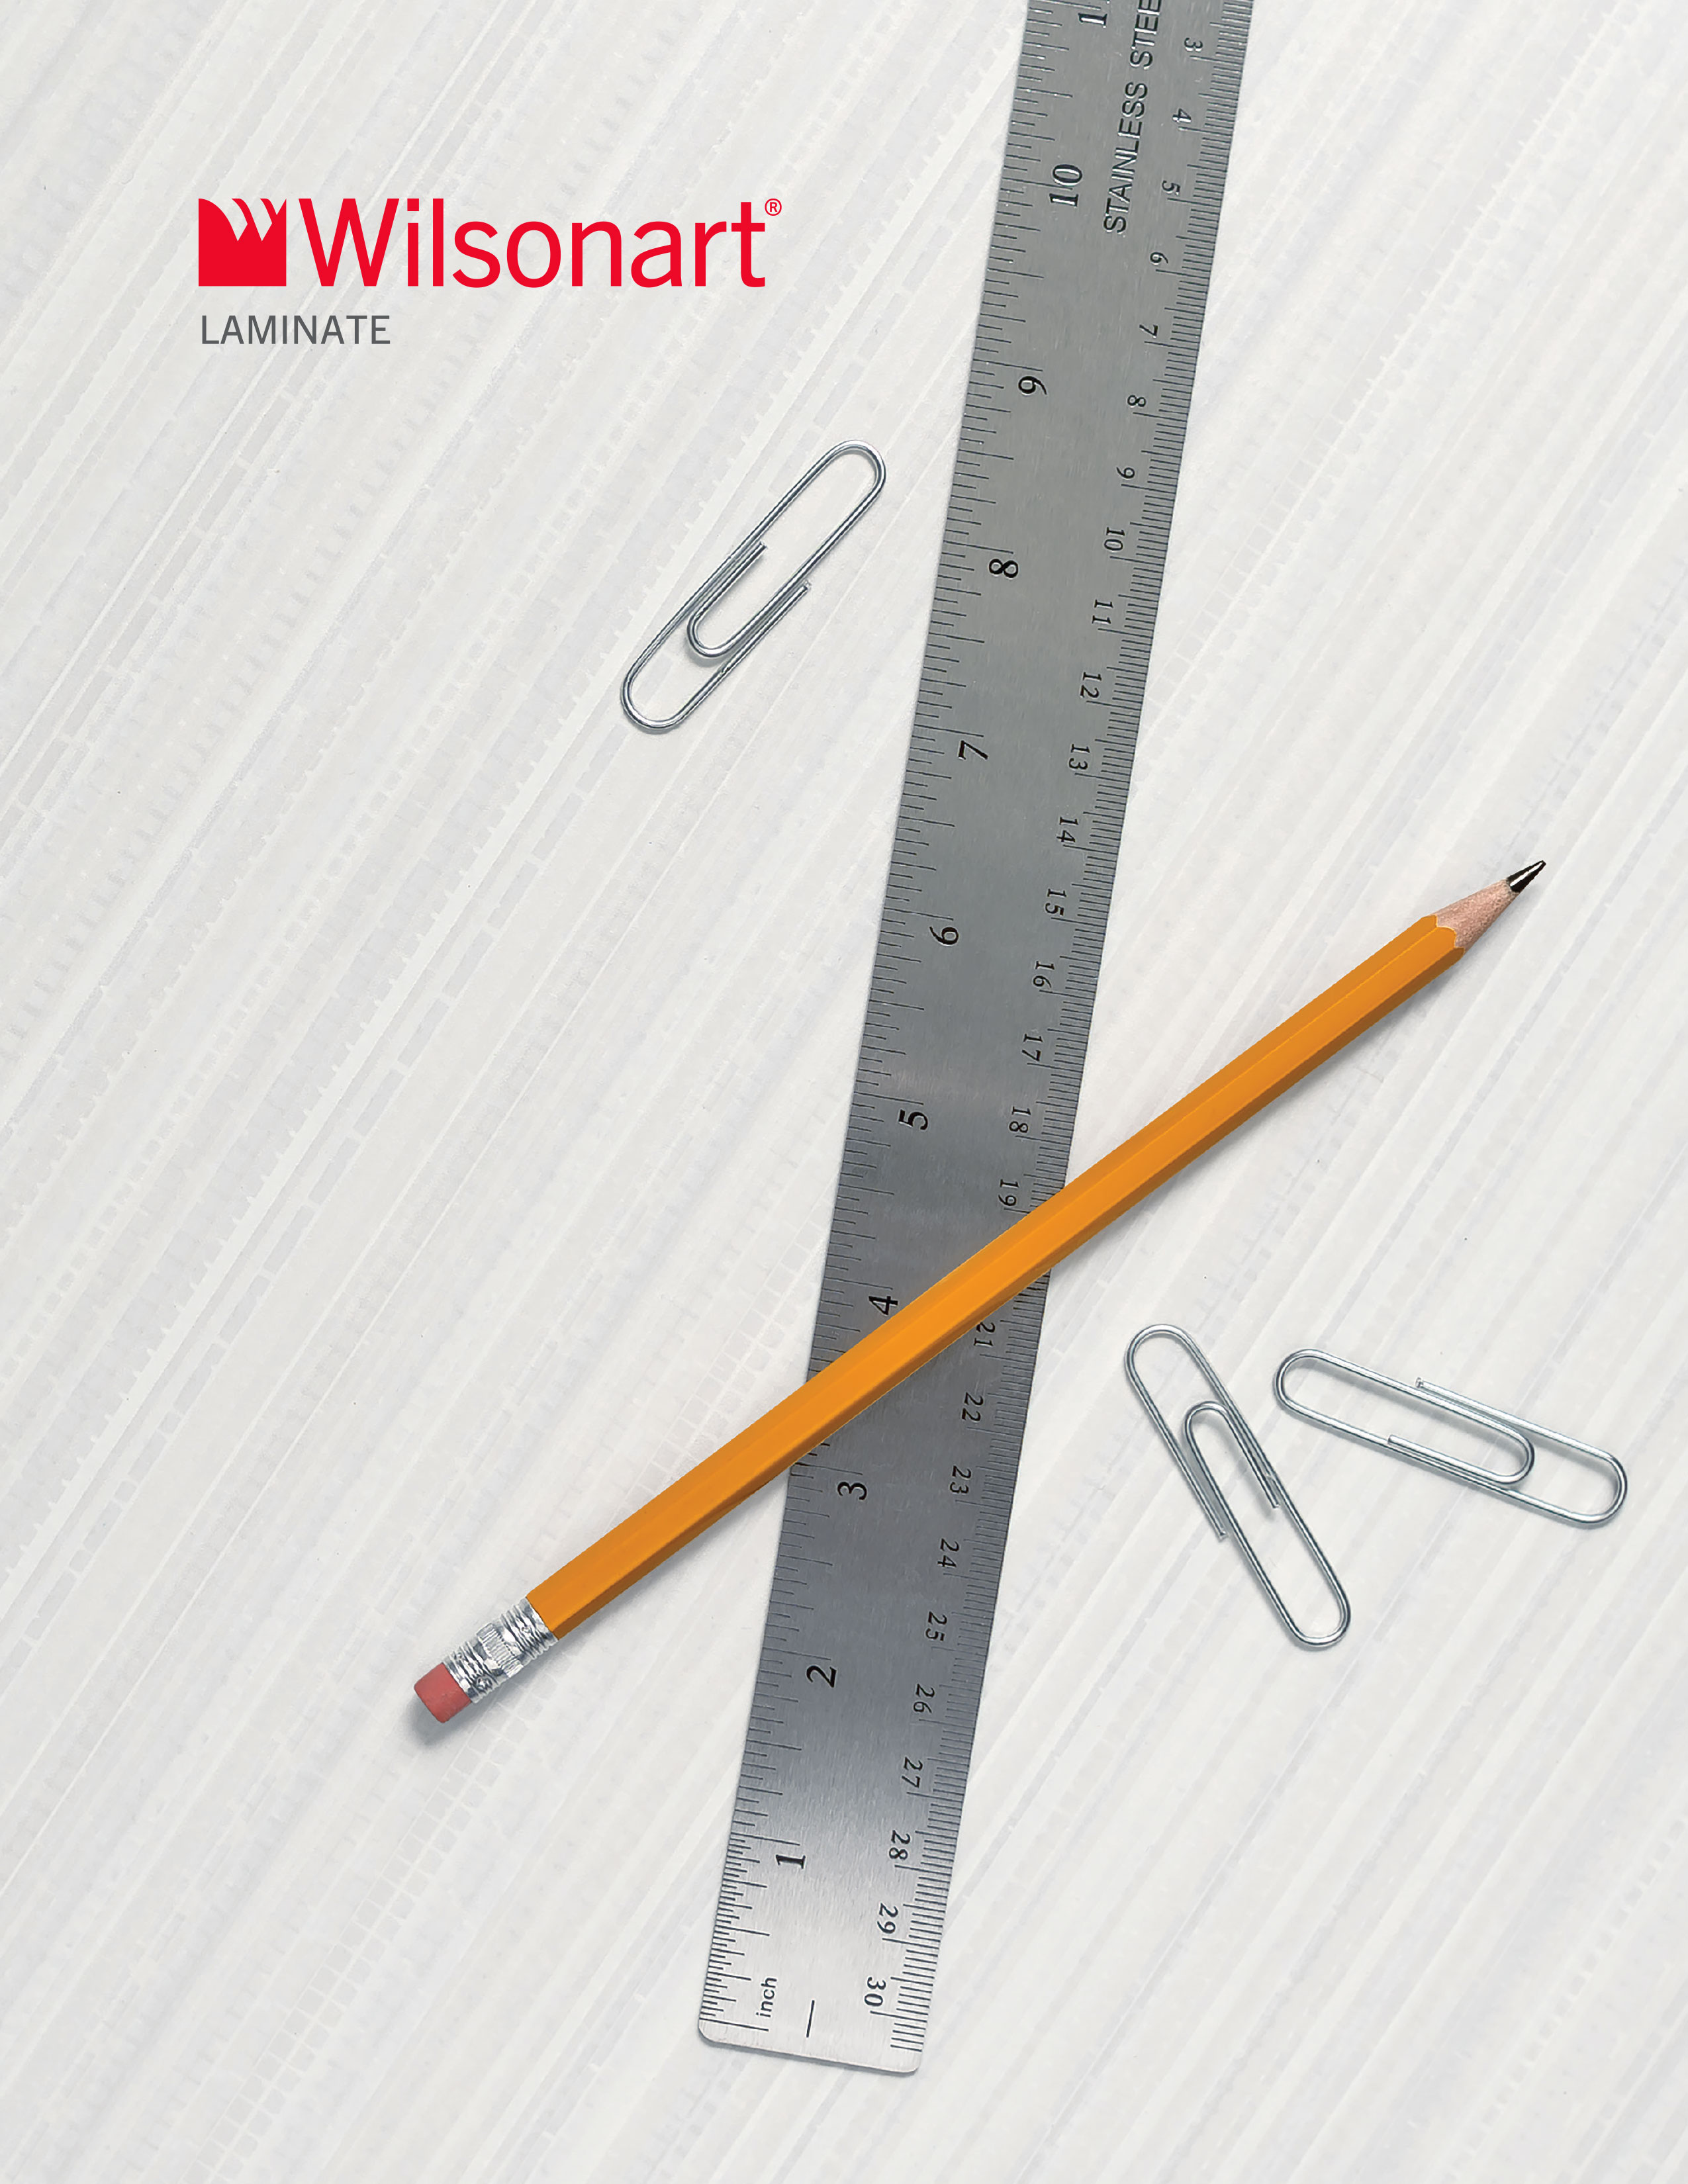 Wilsonart-Standards-Brochure